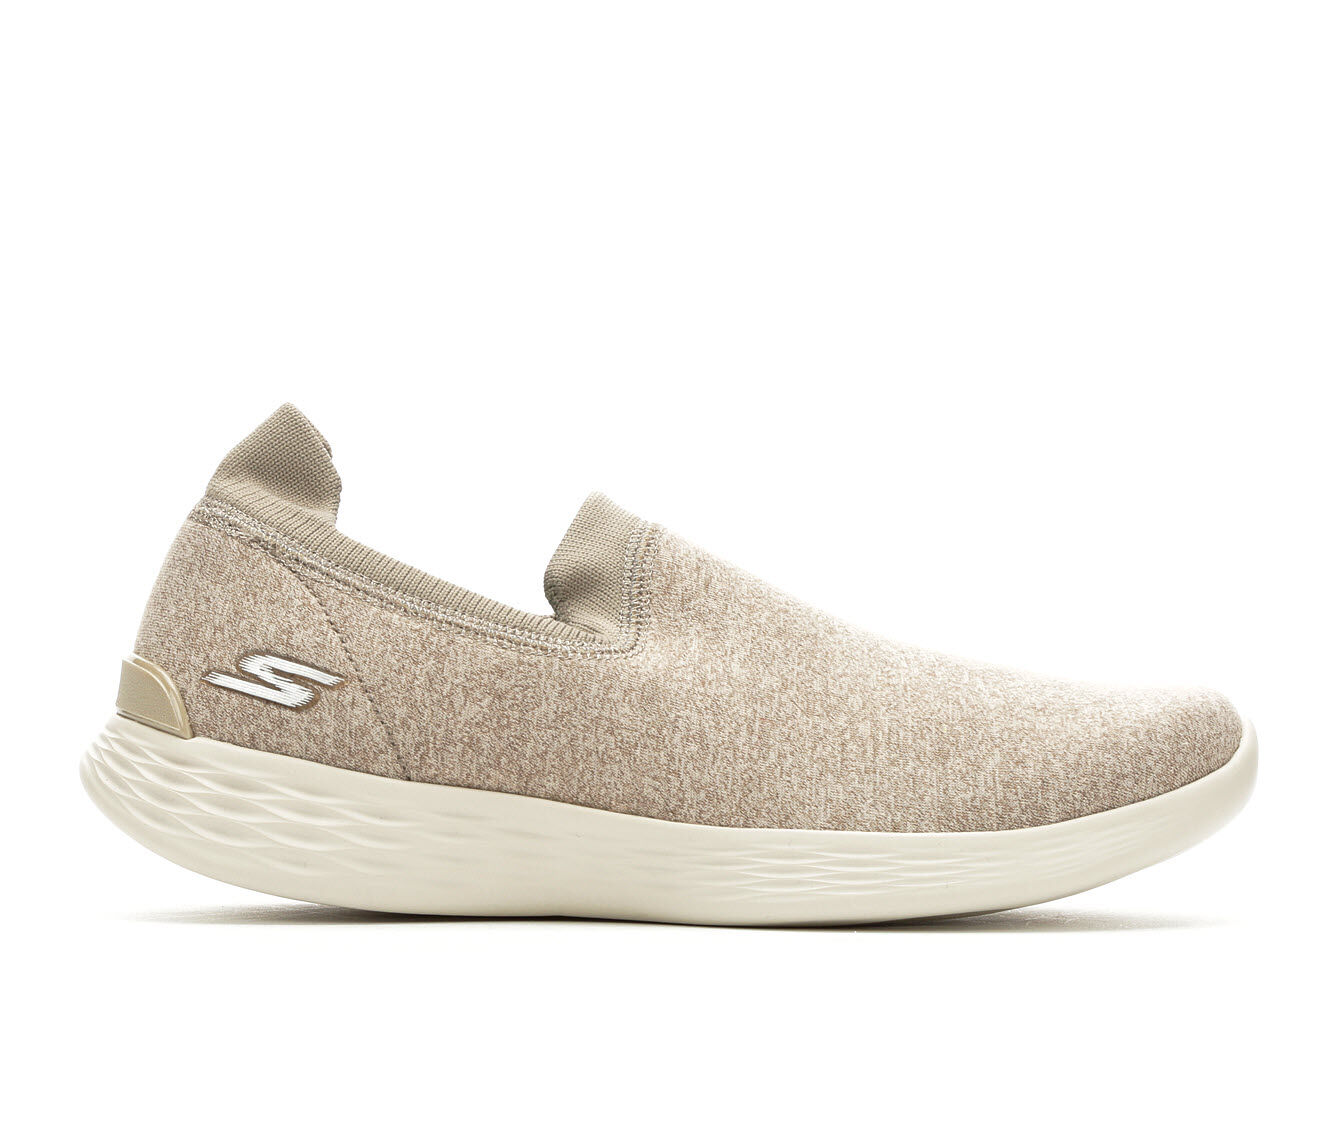 Women's Skechers Go You Perfection 15821 Slip-On Shoes Taupe